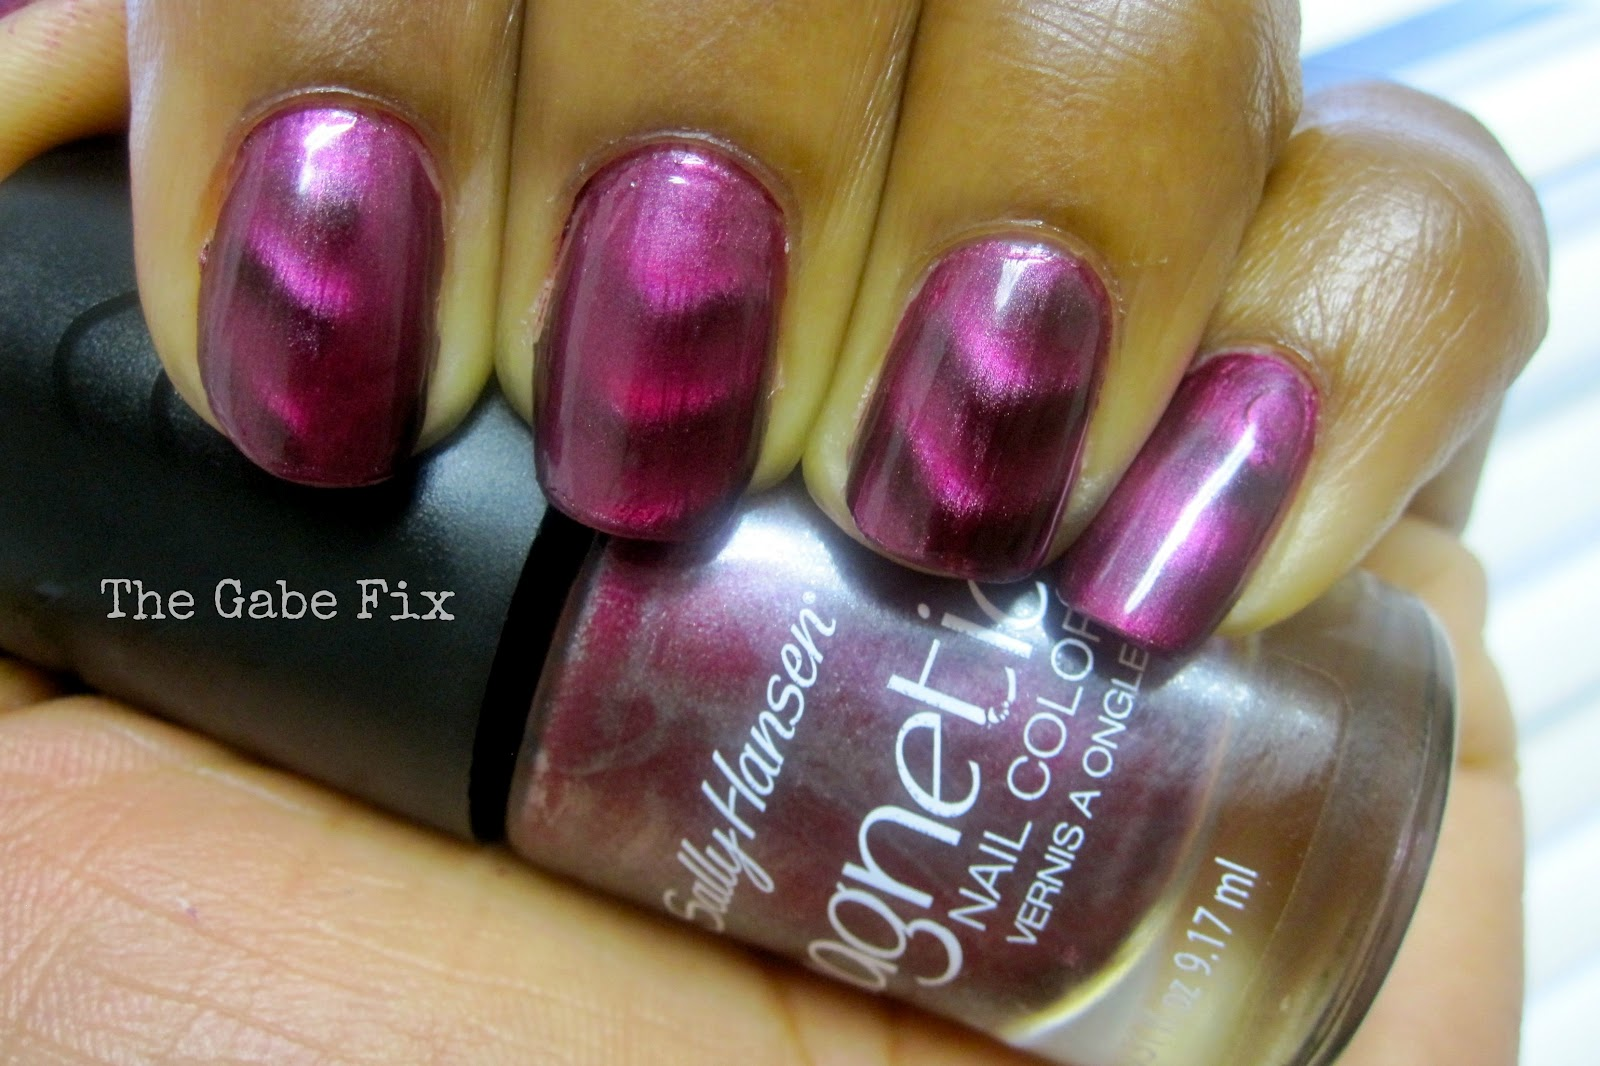 Manicure Monday - Magnetic - The Gabe Fix by Gabrielle Flowers